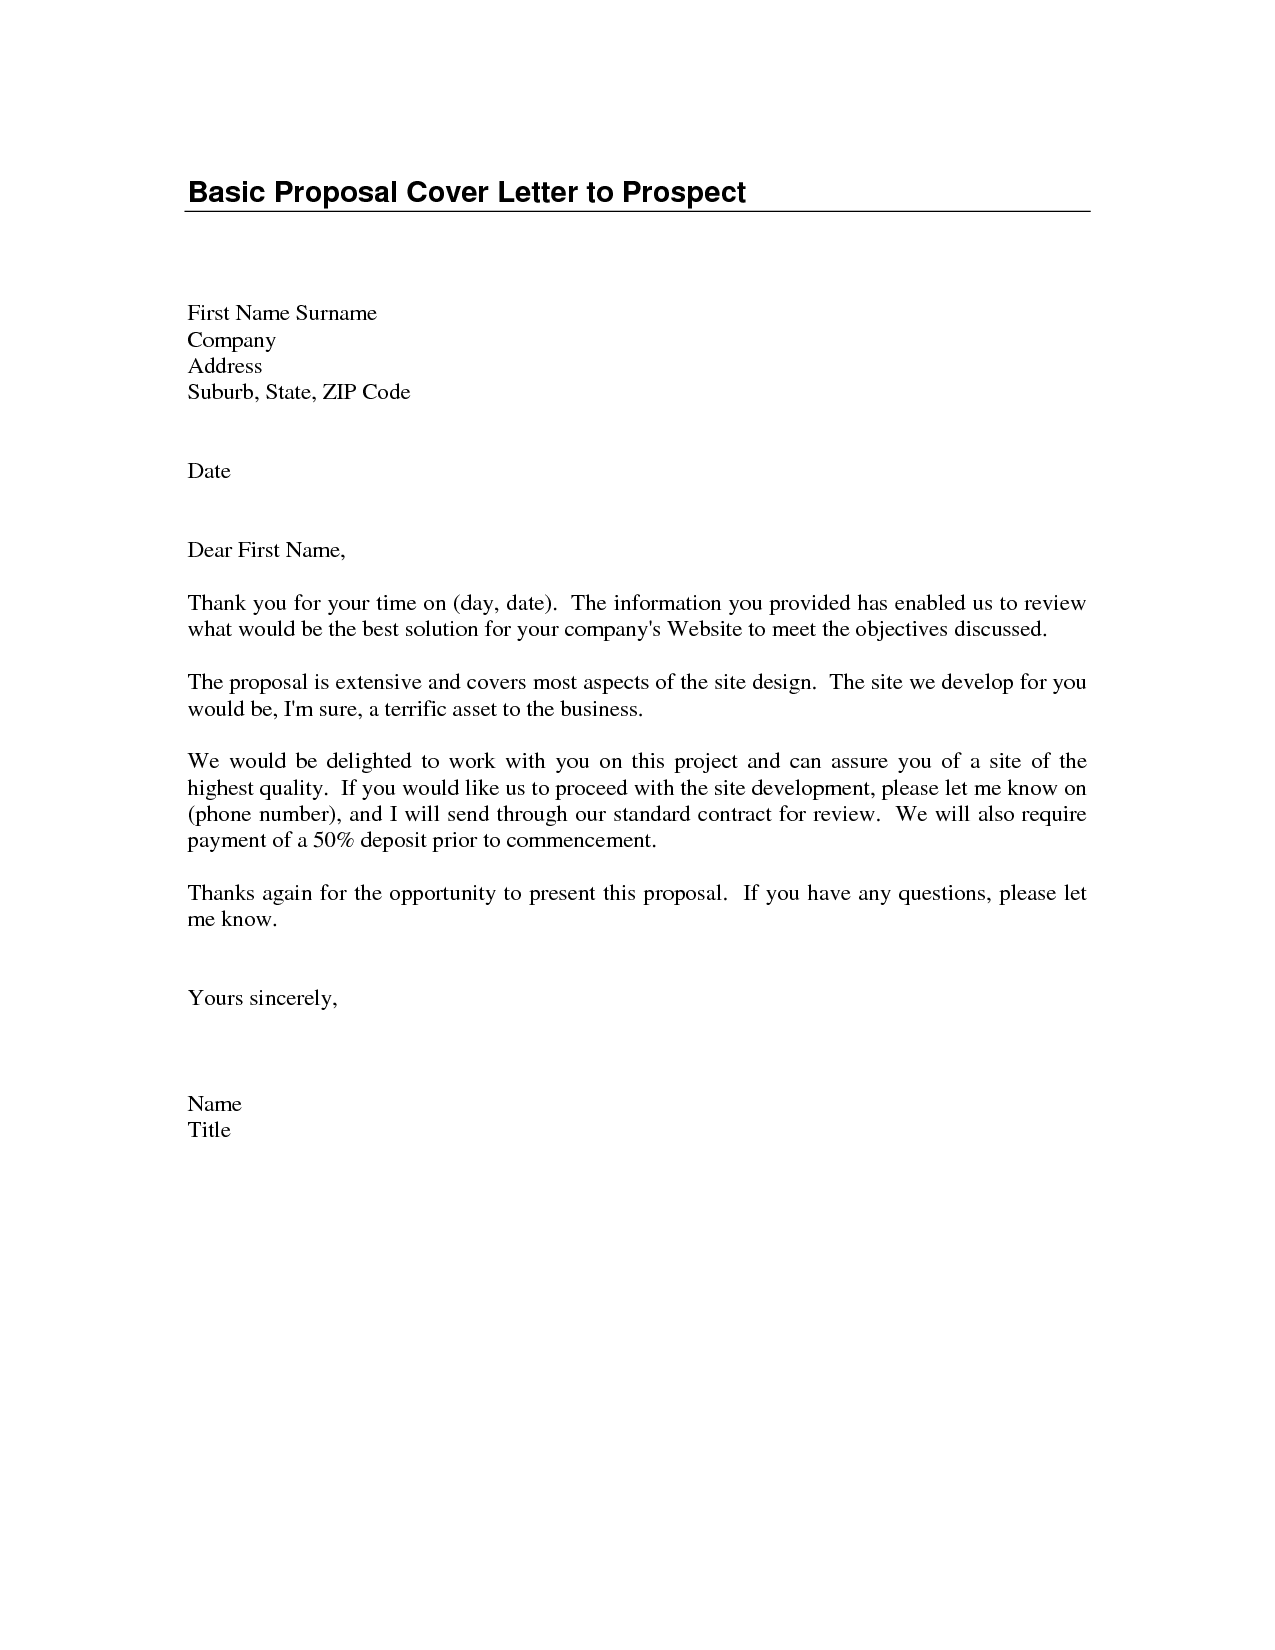 Basic Cover Letter Sample Basic Cover Letters Free BasicSimple – Simple Cover Letter Example